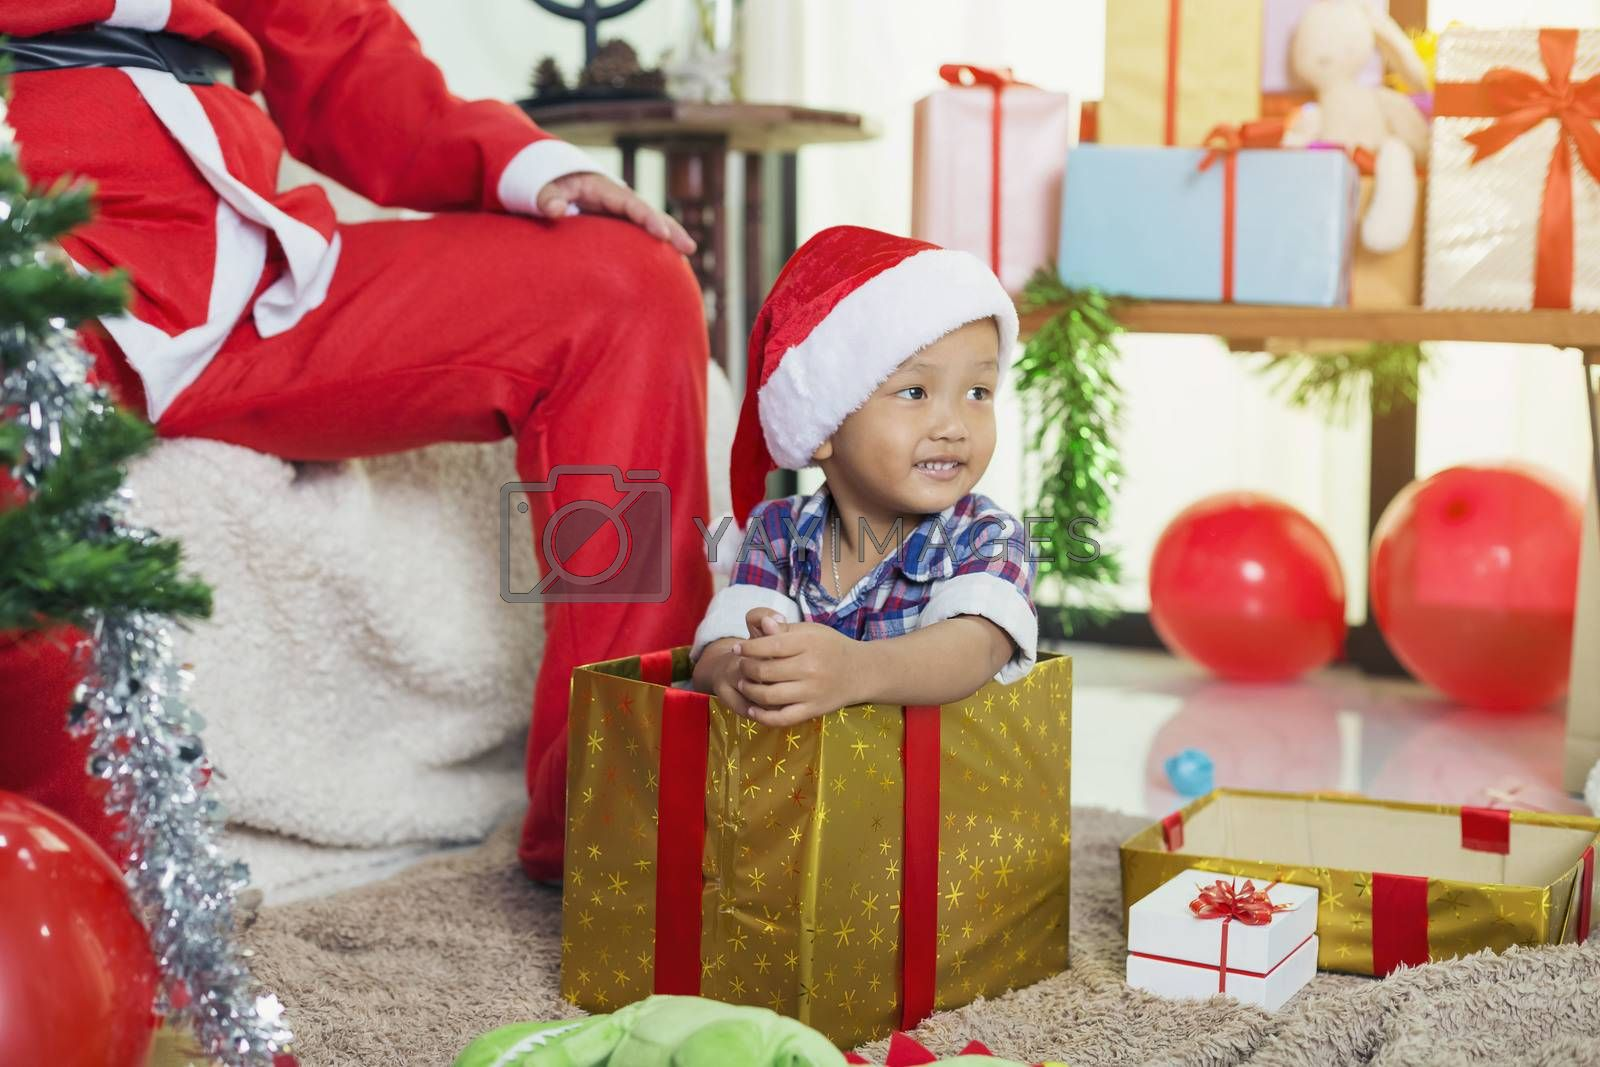 Santa Claus opens a gift box with little boy sitting in a box.